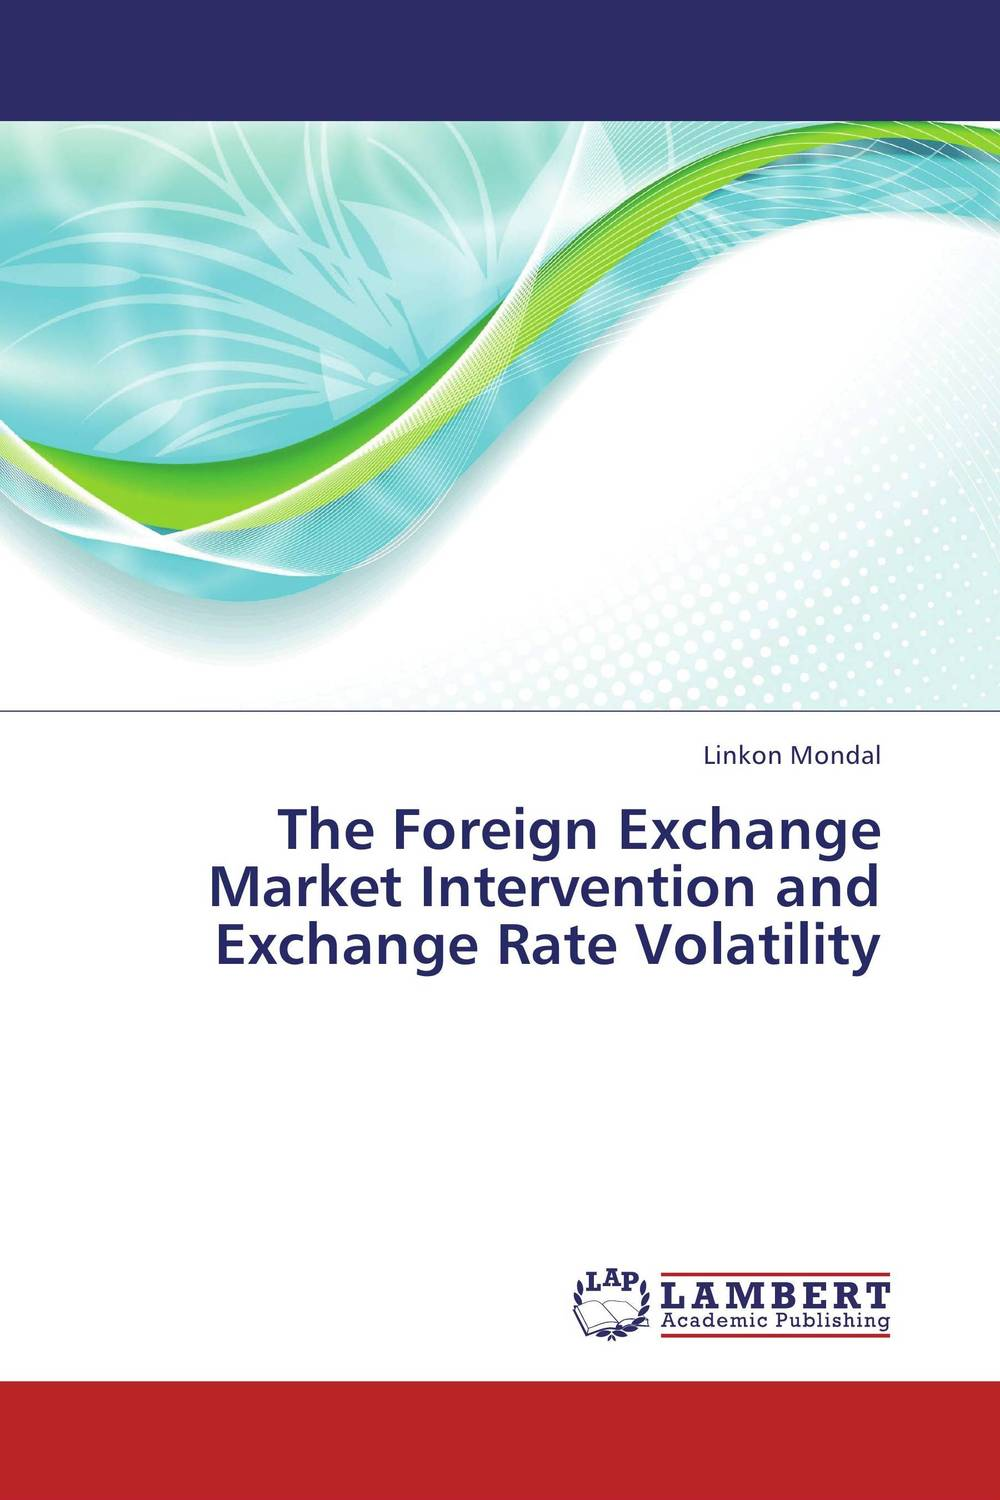 The Foreign Exchange Market Intervention and Exchange Rate Volatility predicting trends in future foreign exchange market prices